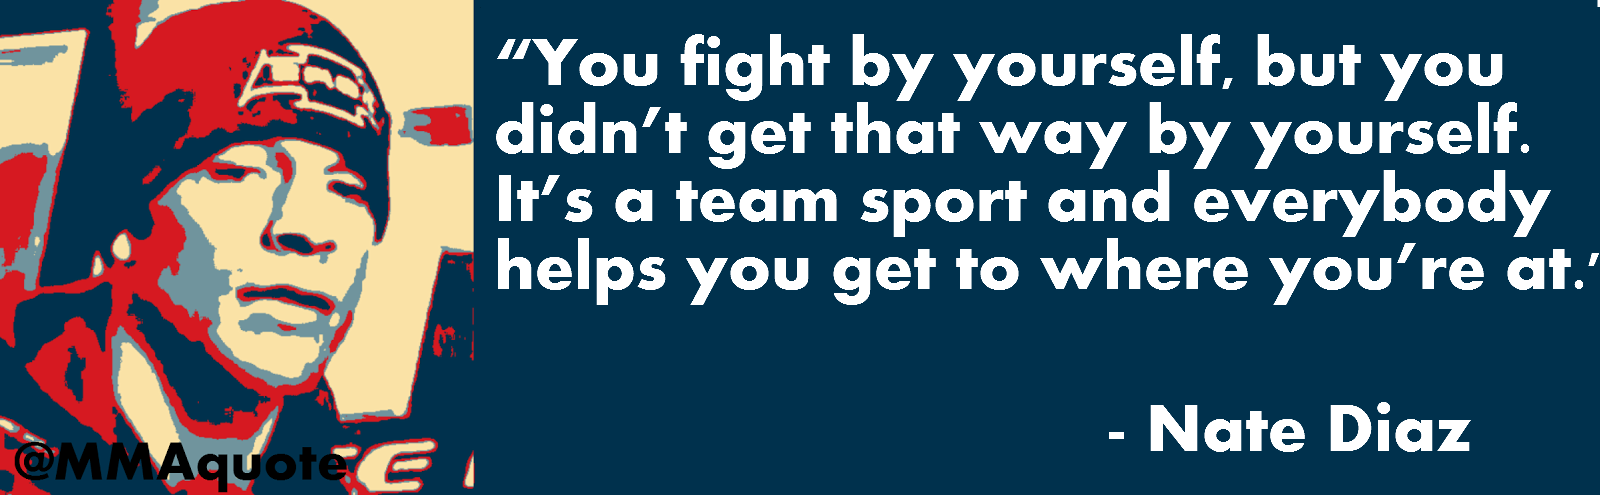 Motivational Quotes For Sports Teams: Team Sport Quotes. QuotesGram